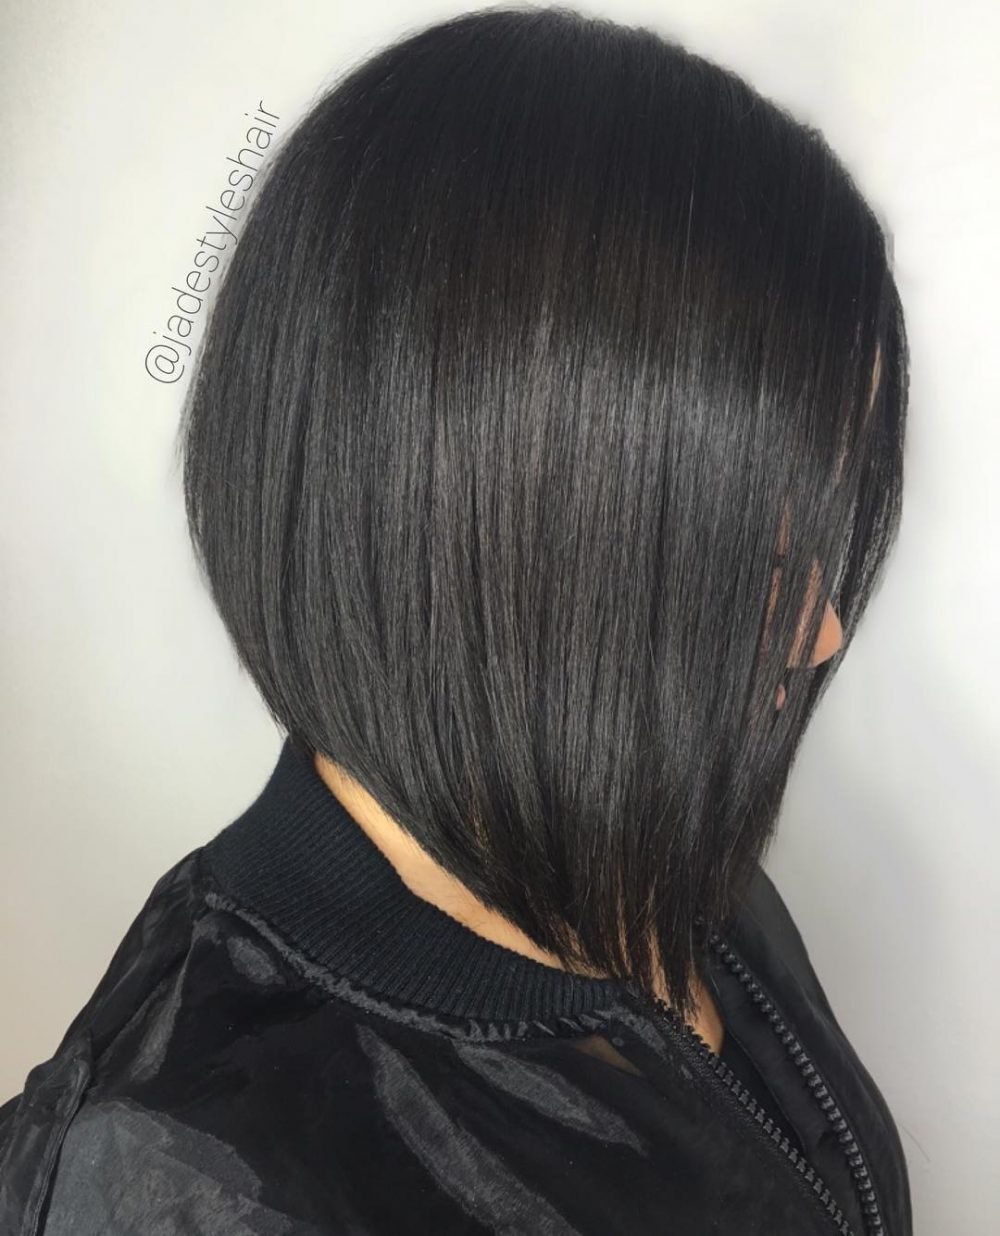 41 Different Types of Haircuts On the Radar Right Now